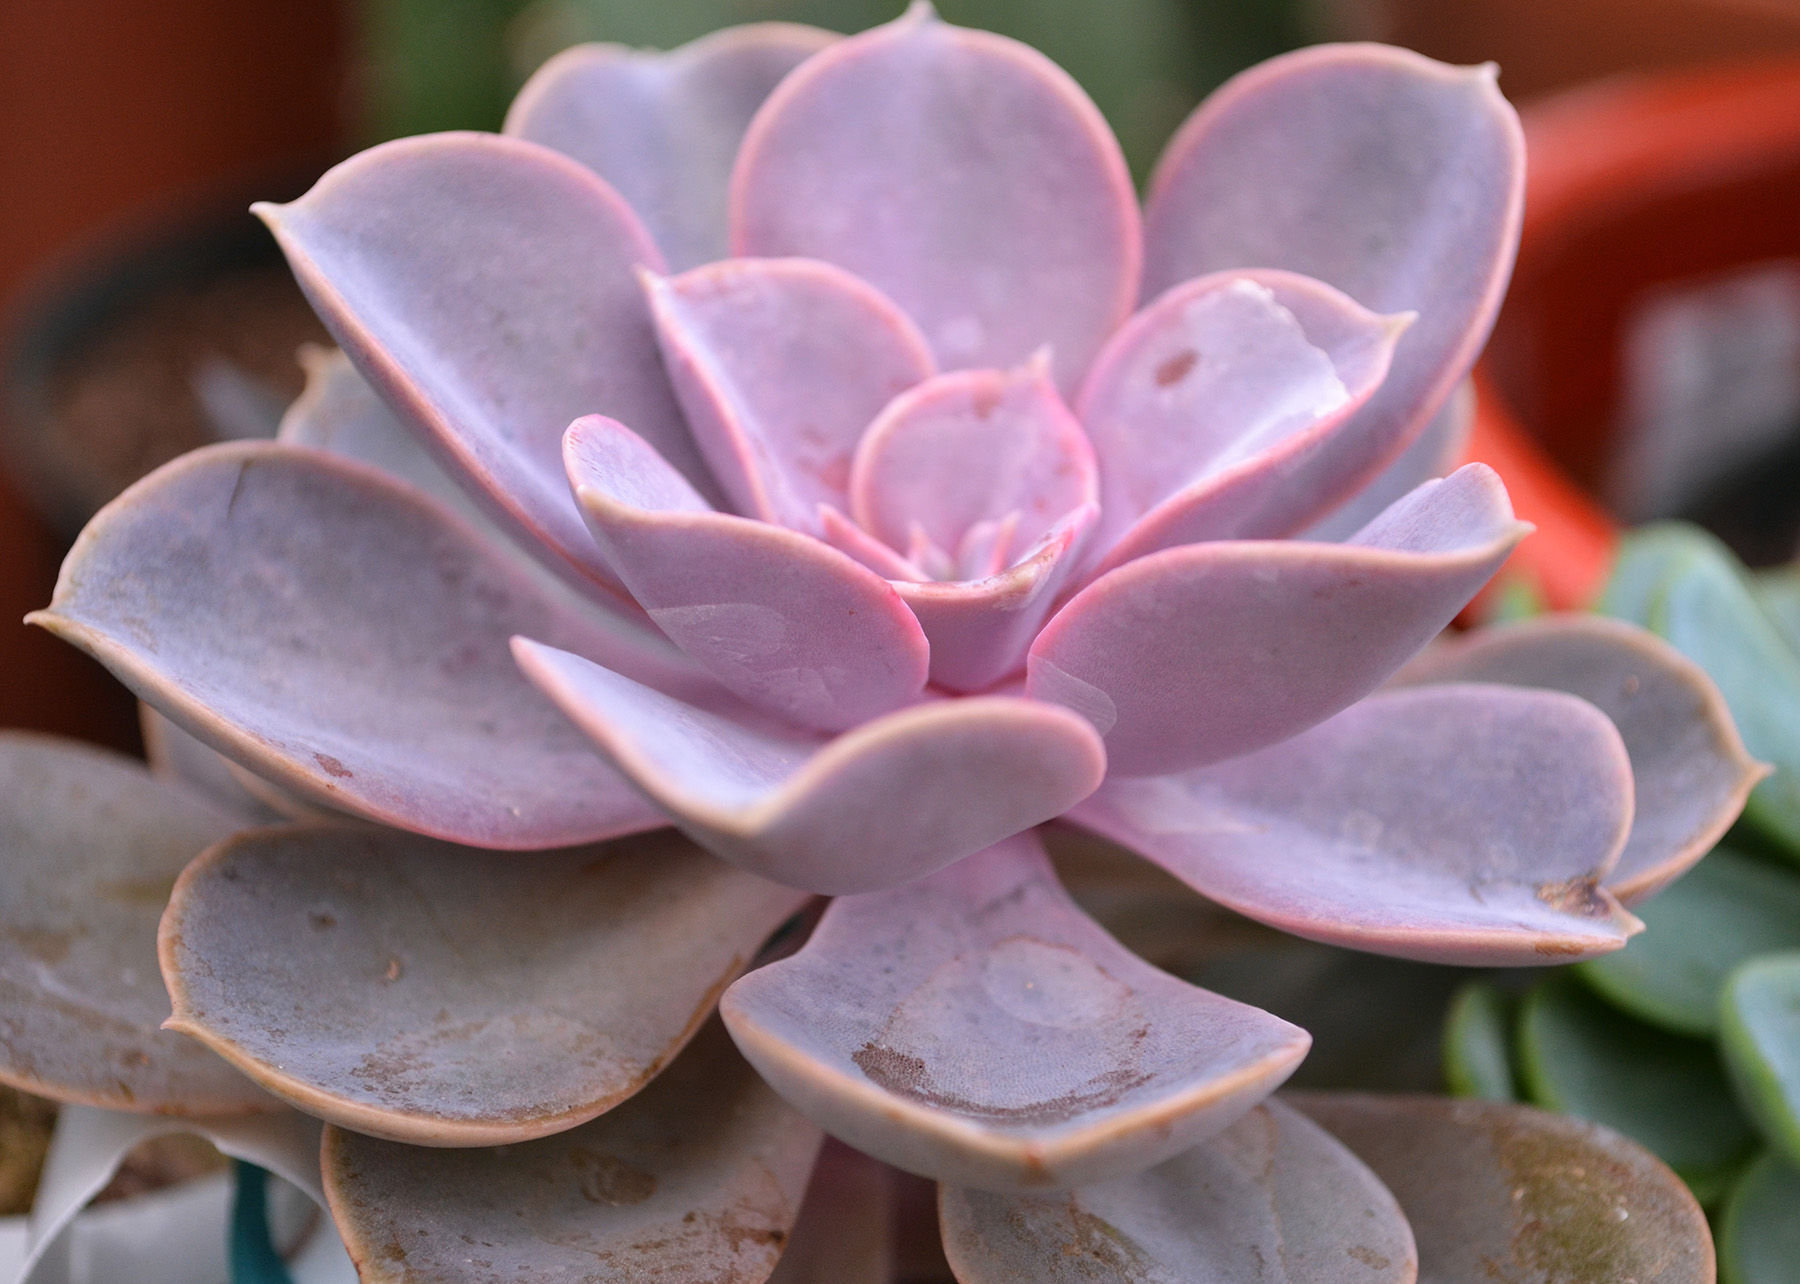 Blog all about succulents one of the most attractive succulents is echeveria available in many colors textures and tones echeveria has waxy leaves and bell shaped flowers that mightylinksfo